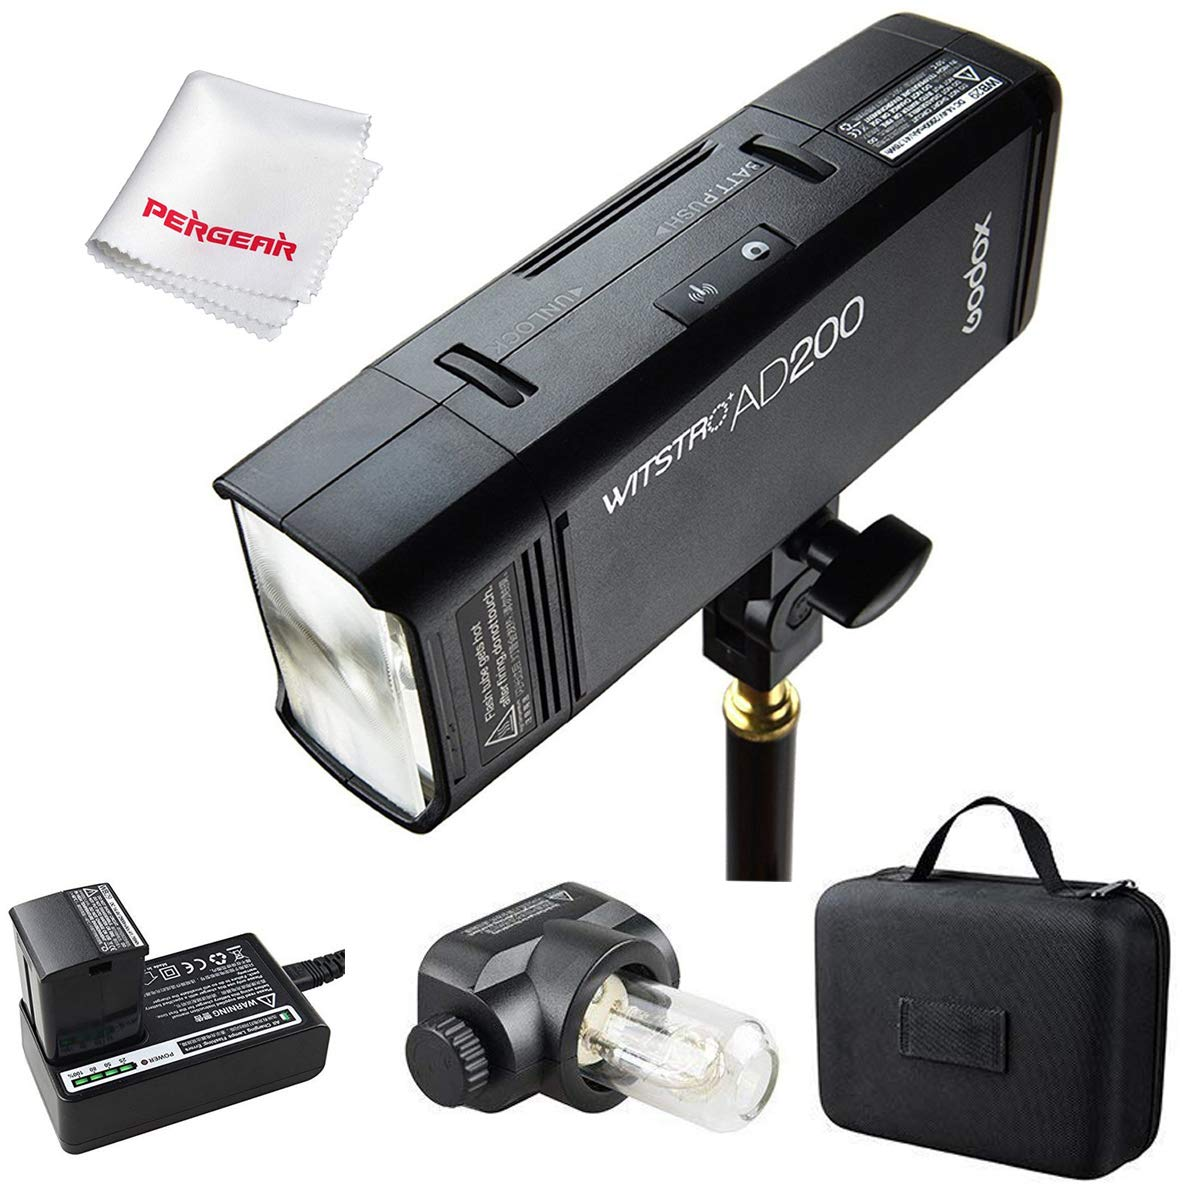 Godox AD200 200Ws 2.4G TTL Flash Strobe 1/8000 HSS Cordless Monolight with 2900mAh Lithimu Battery and Bare Bulb/Speedlite Fresnel Flash Head to Cover 500 Full Power Shots and Recycle in 0.01-2.1 Sec by Godox